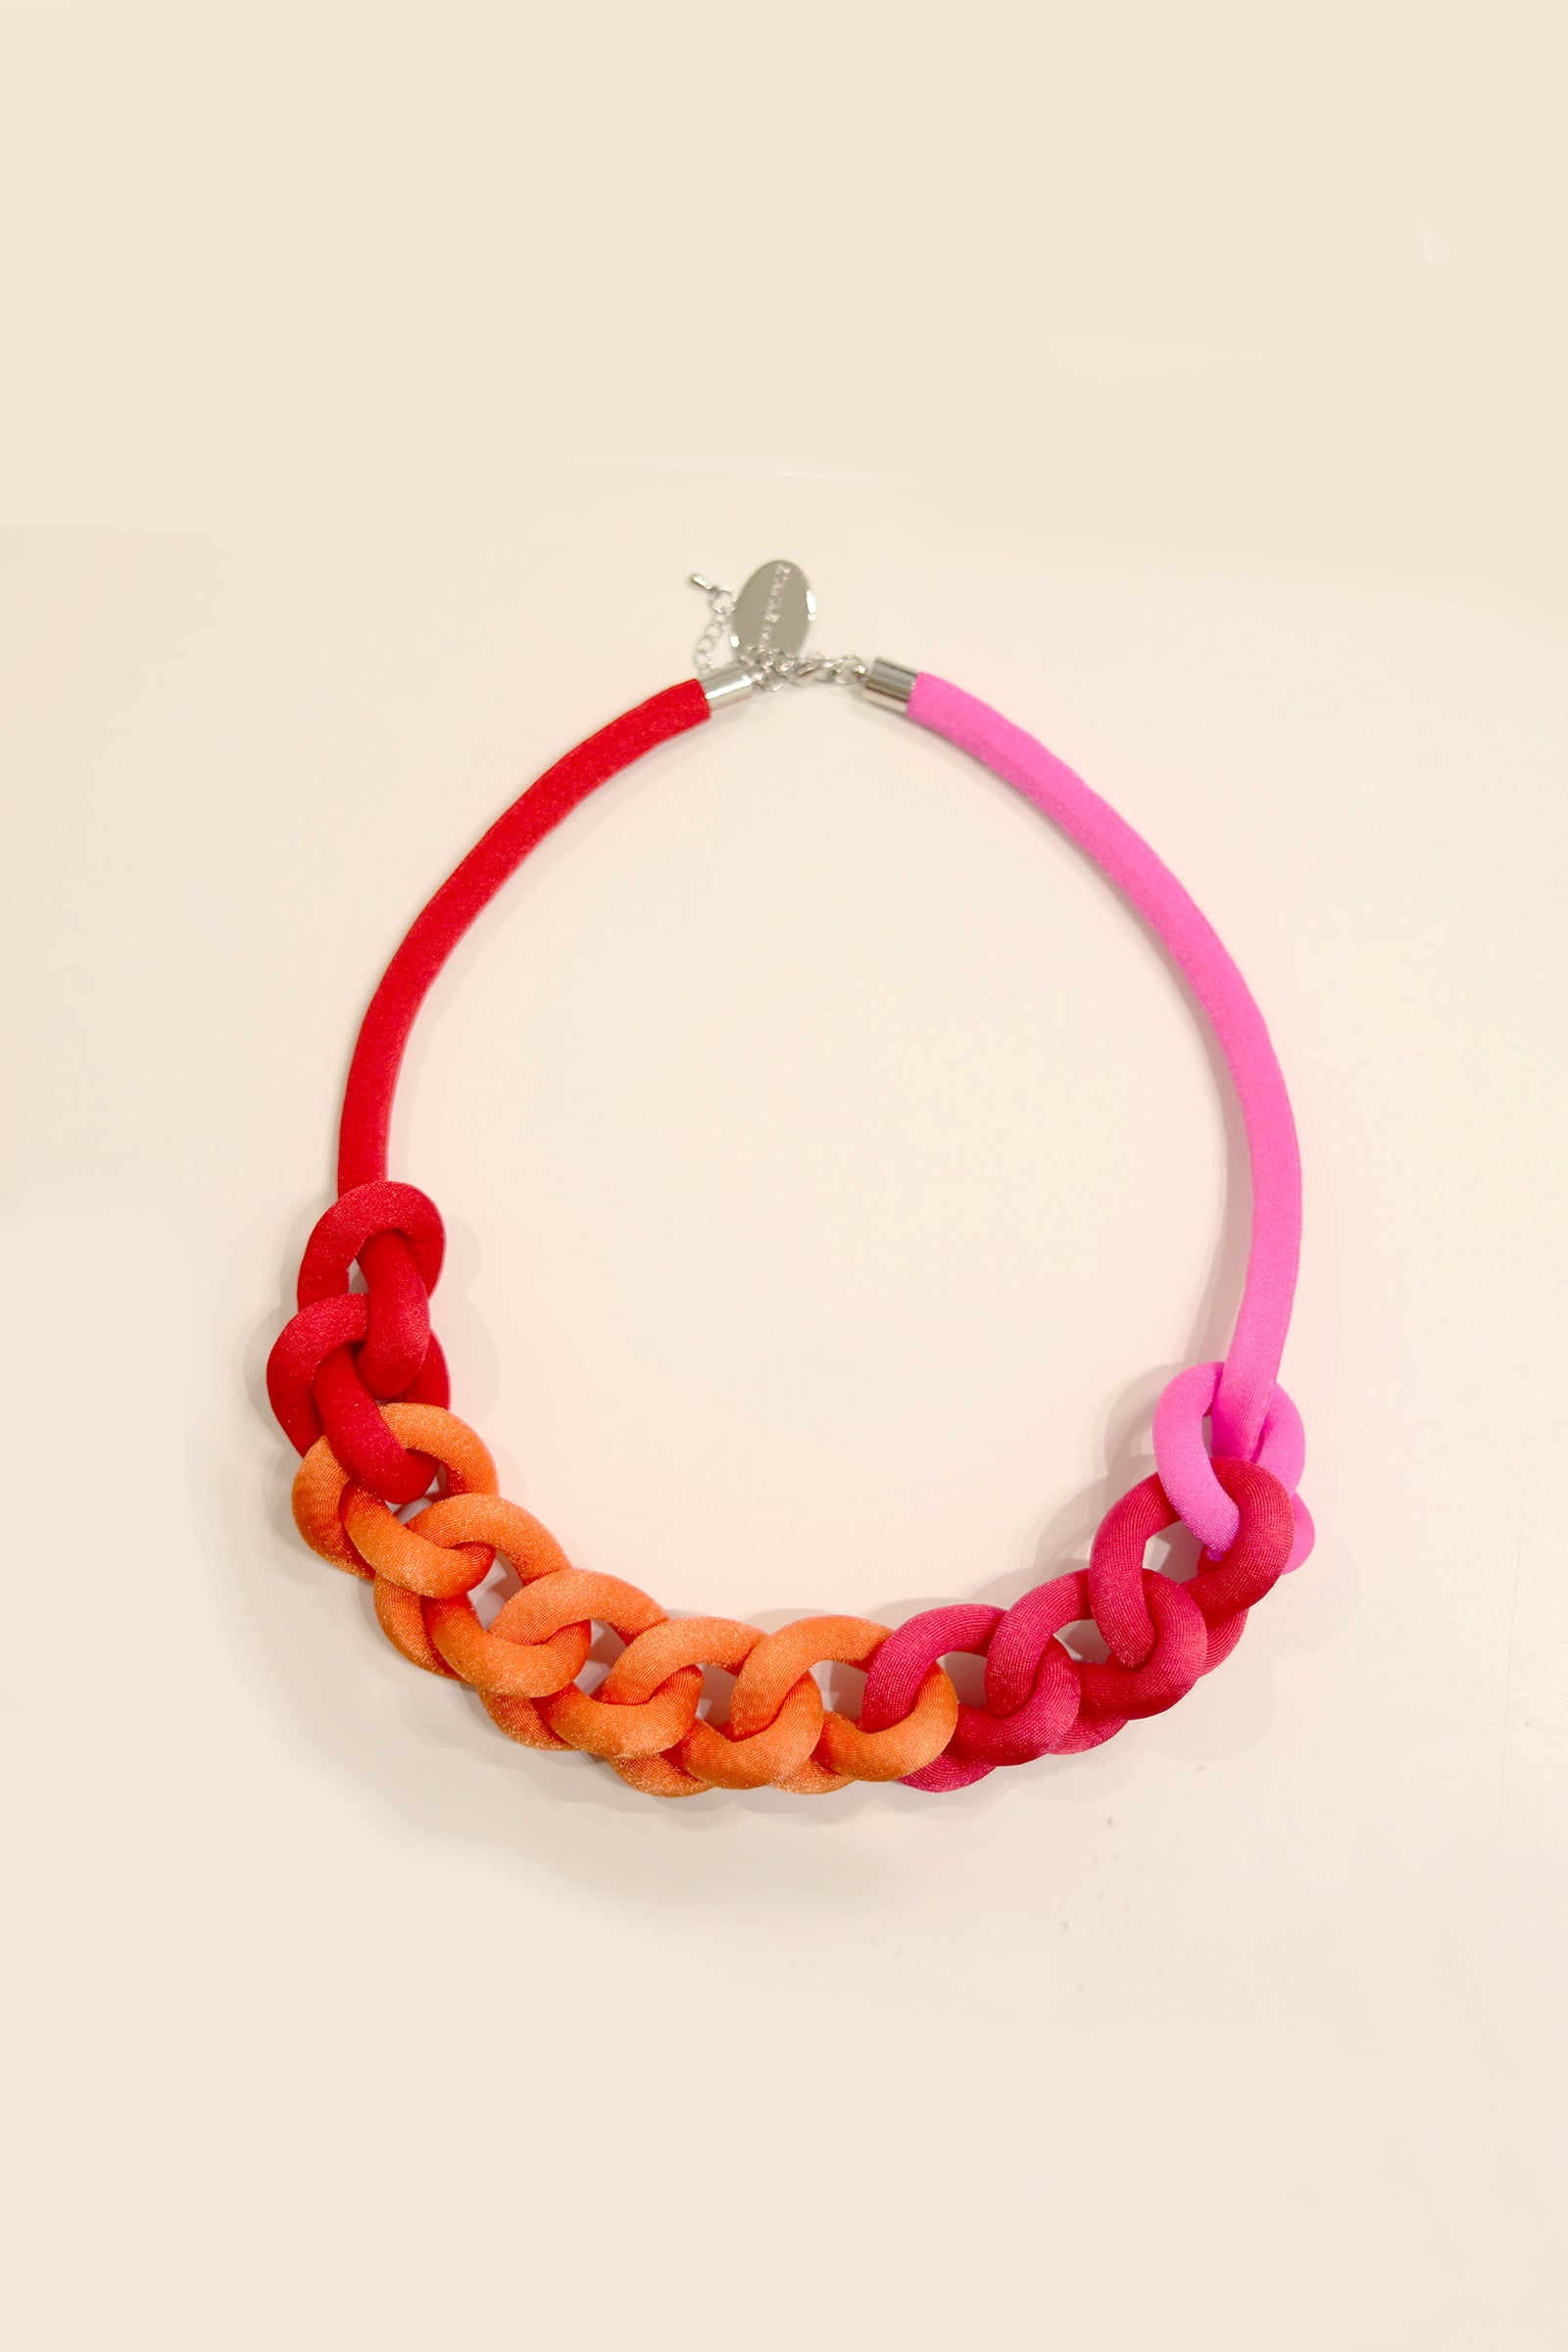 Collar Cadena Degradé Rojo Fucsia